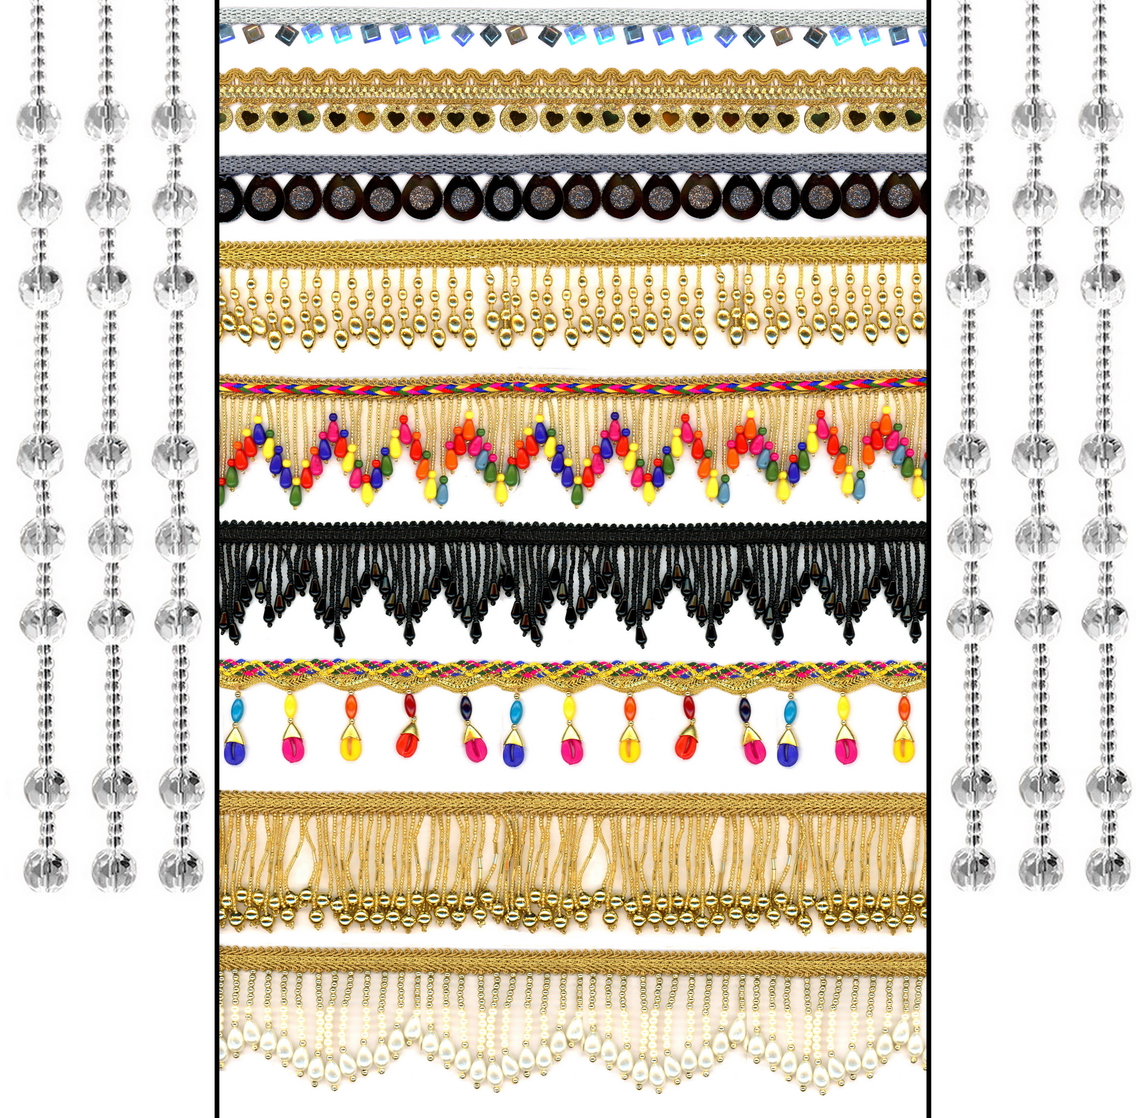 Latkan & Hangings Laces - Romy Lace - Best Lace Manufacturer in Surat, India